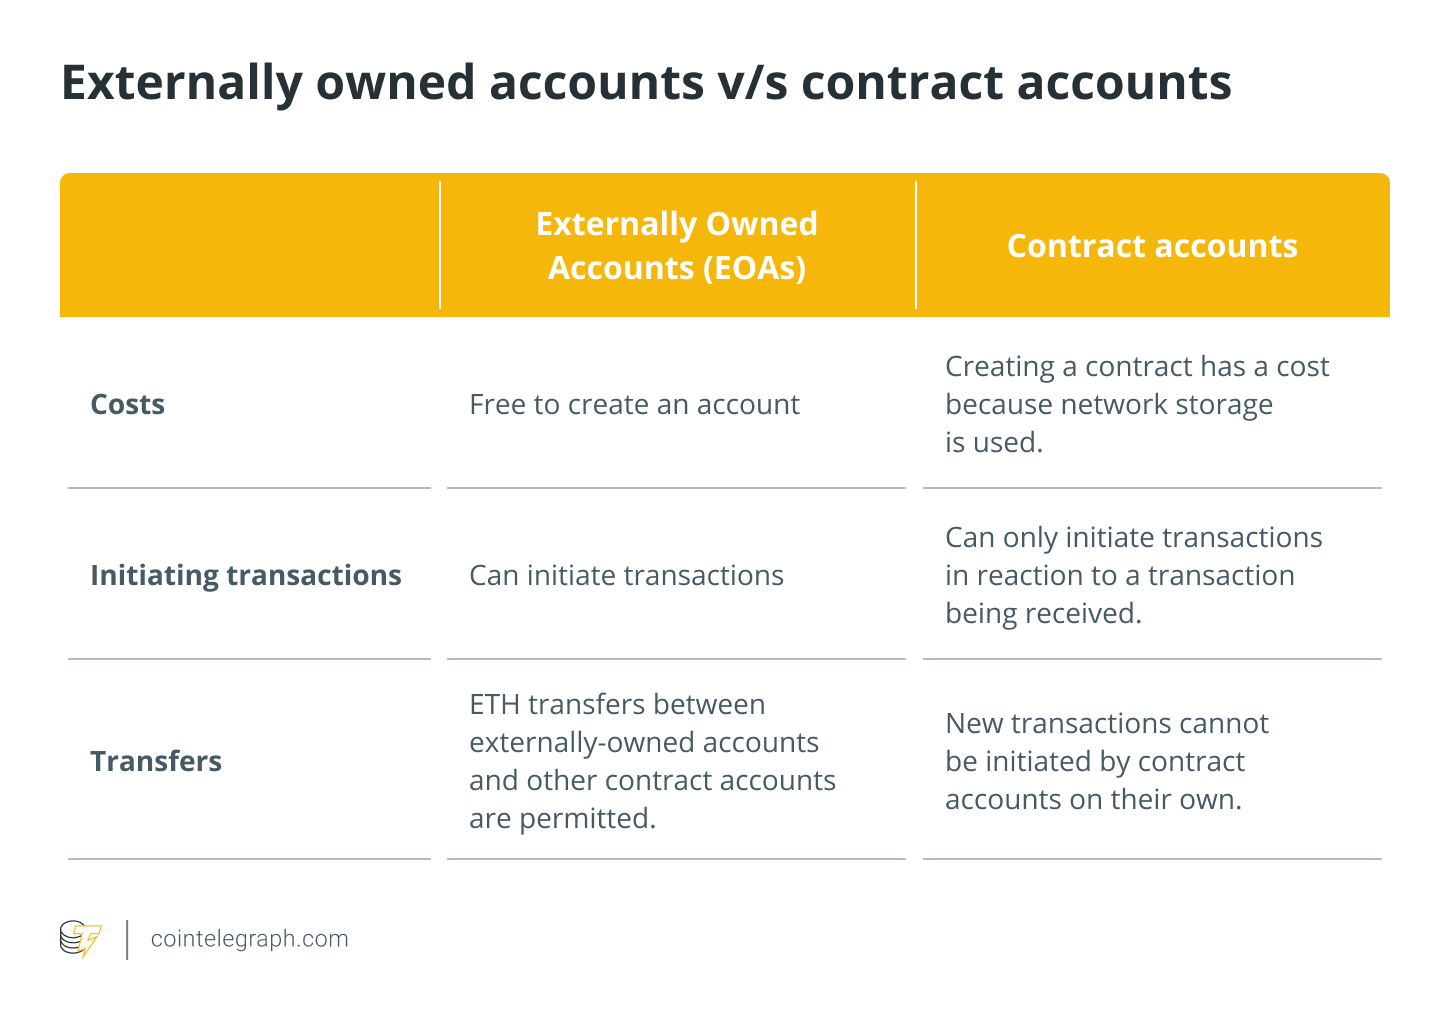 Externally Owned Accounts vs Contract accounts